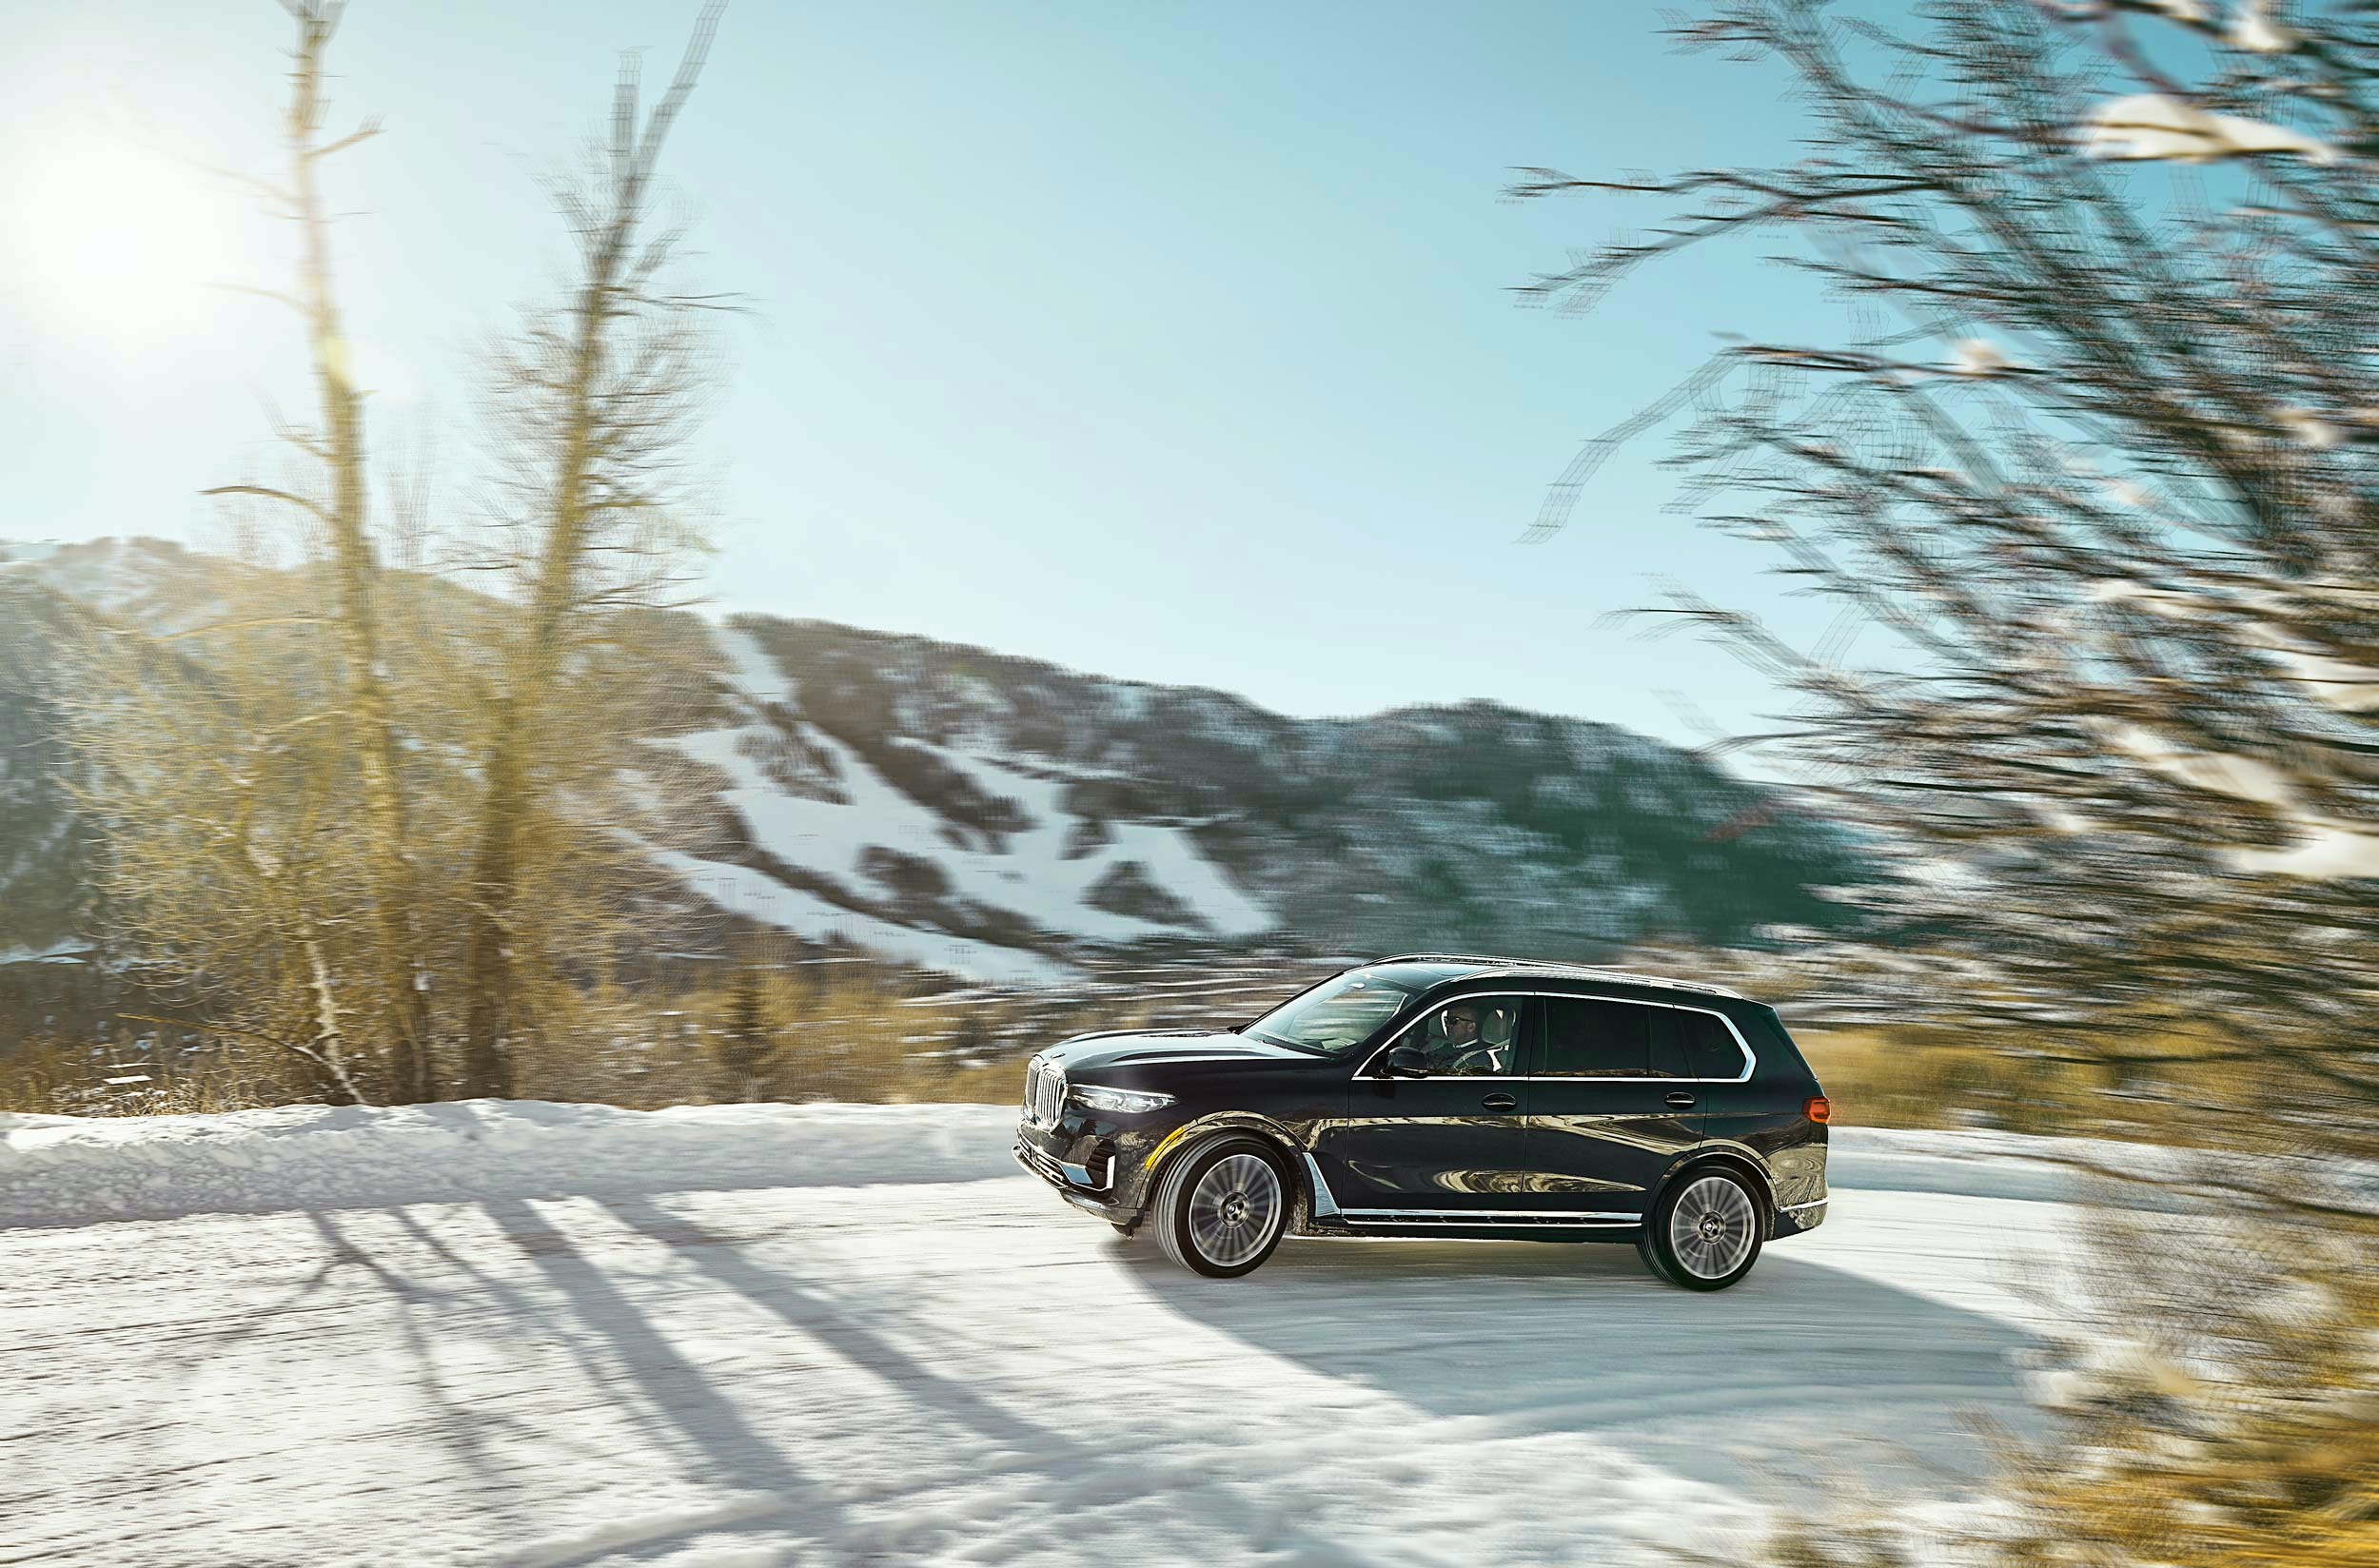 121318_maguire_amex_bmw-aspen_0813